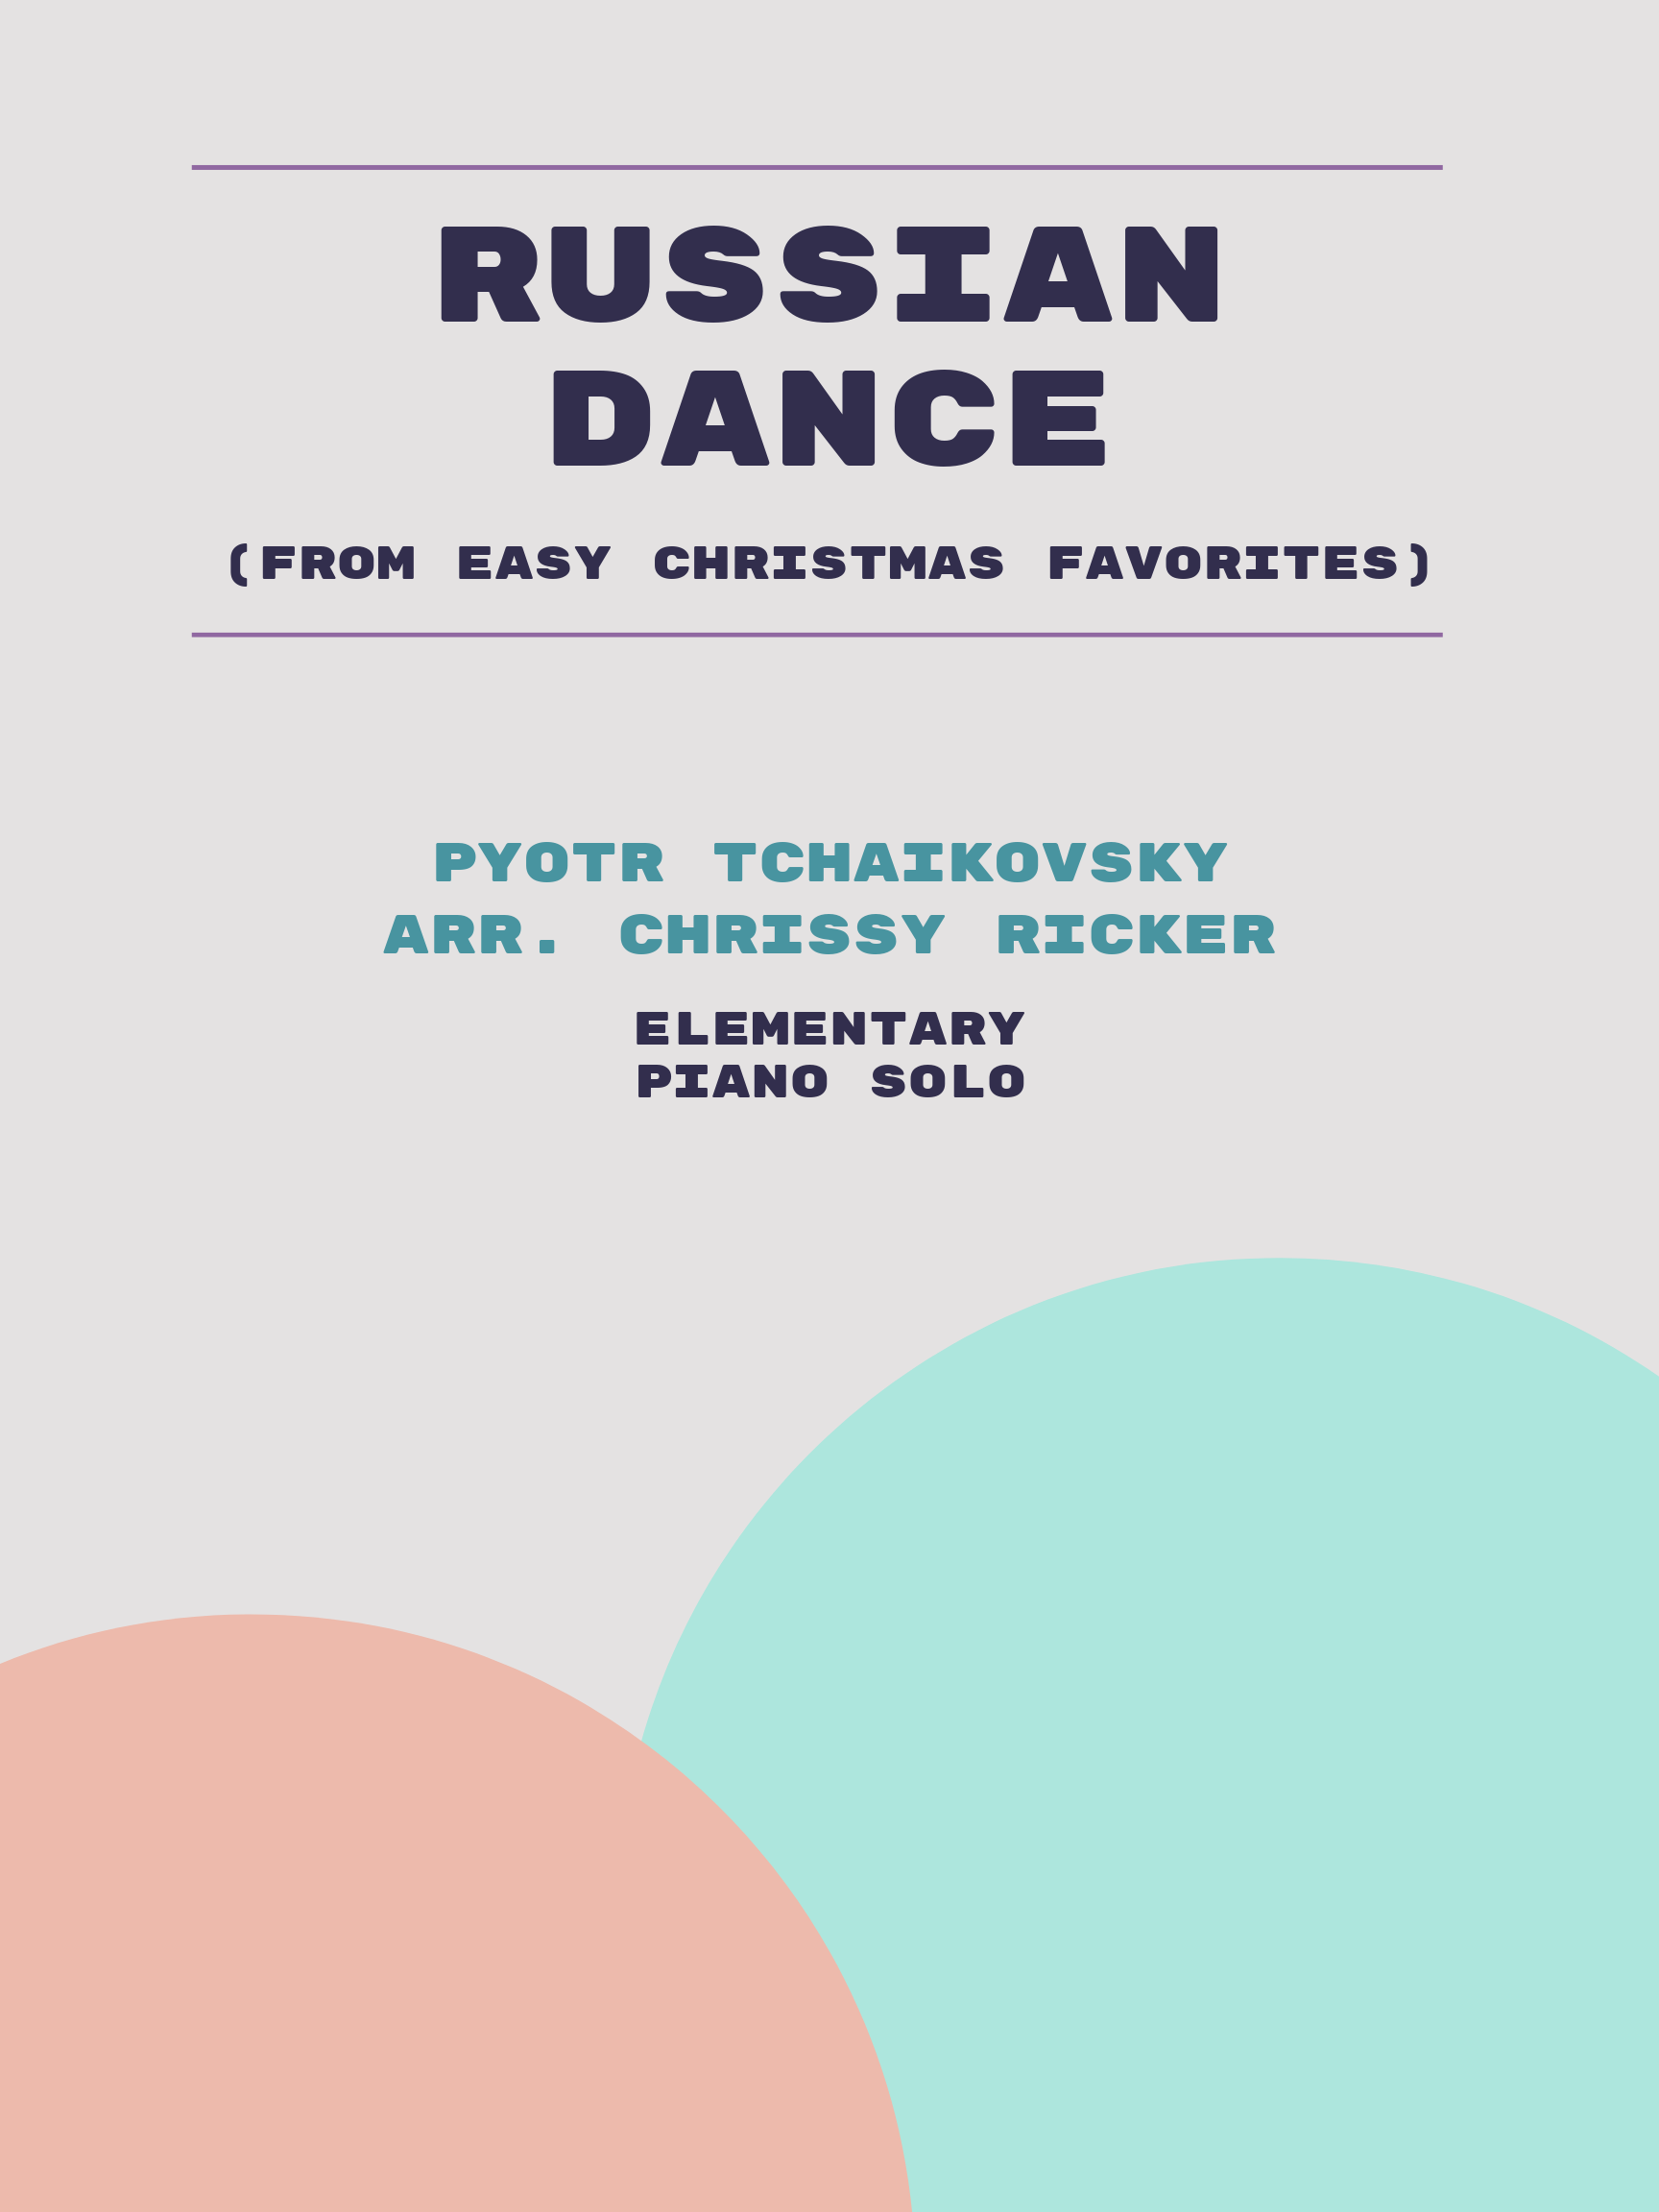 Russian Dance by Pyotr Tchaikovsky